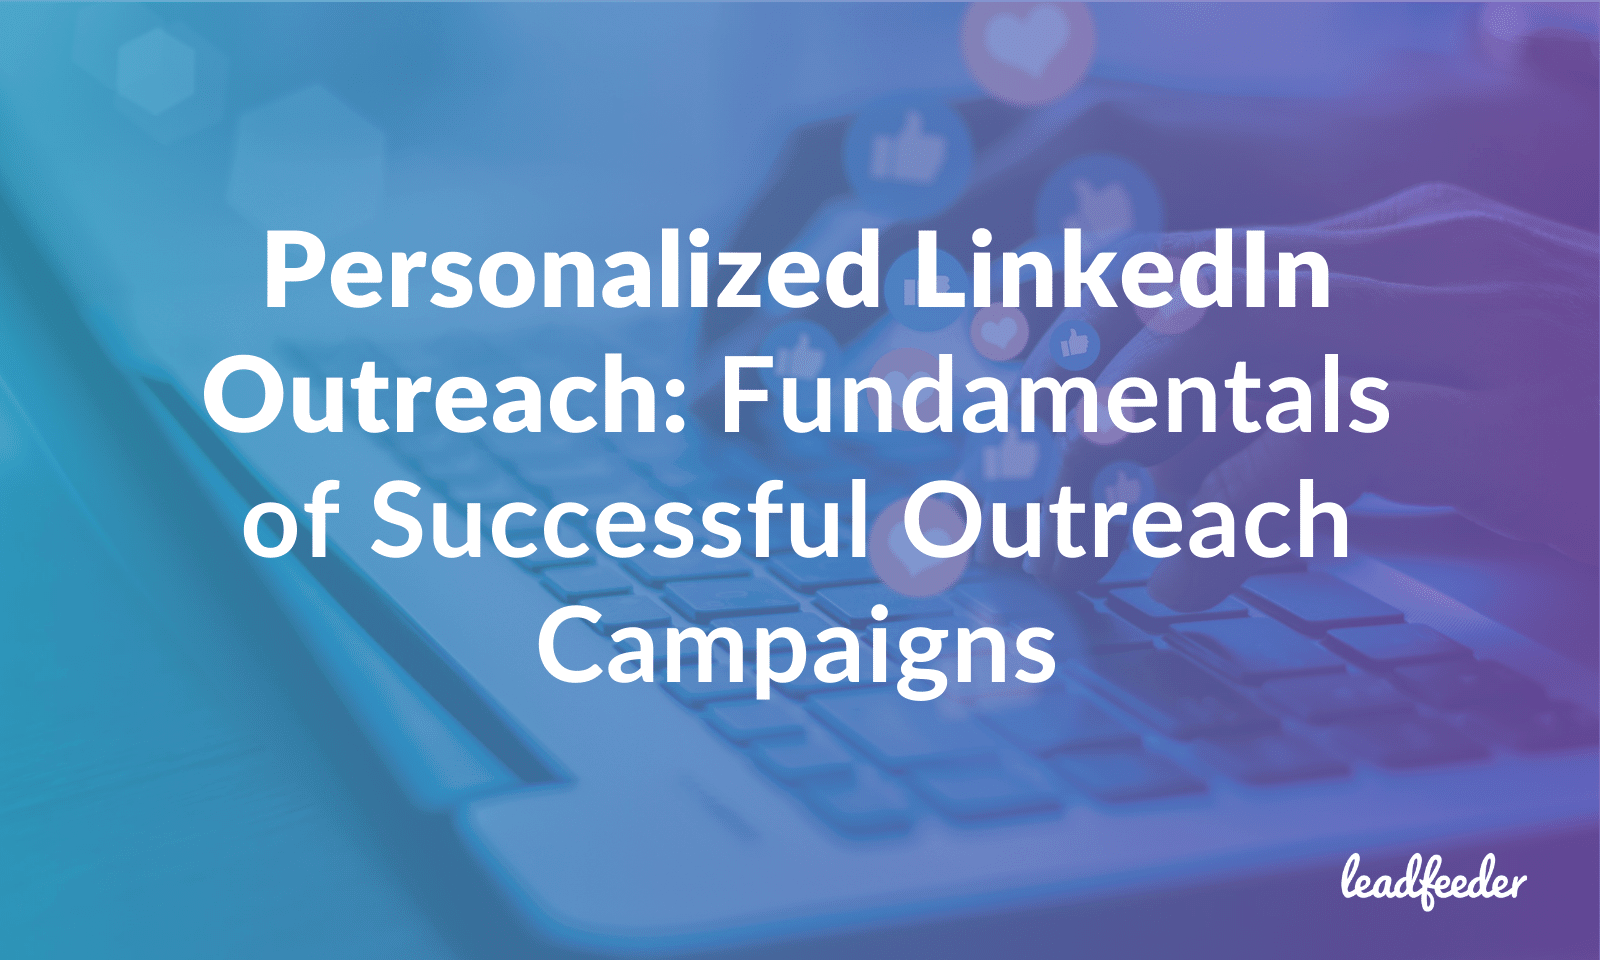 linkedin personalized outreach